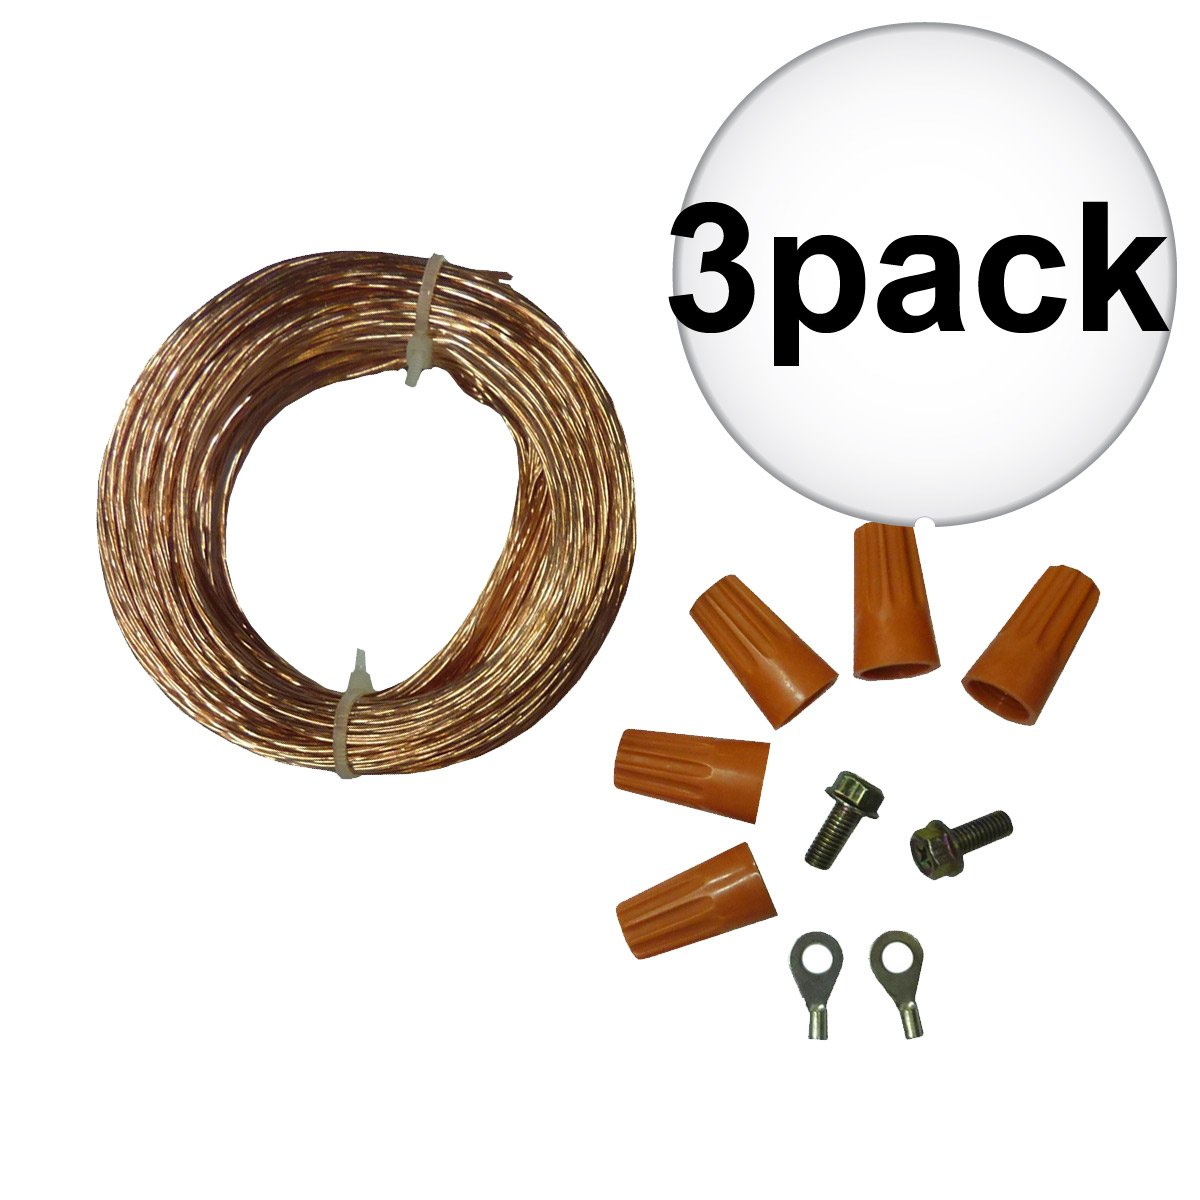 Woodstock W1053 Dust Collection System Grounding Kit 3-Pack